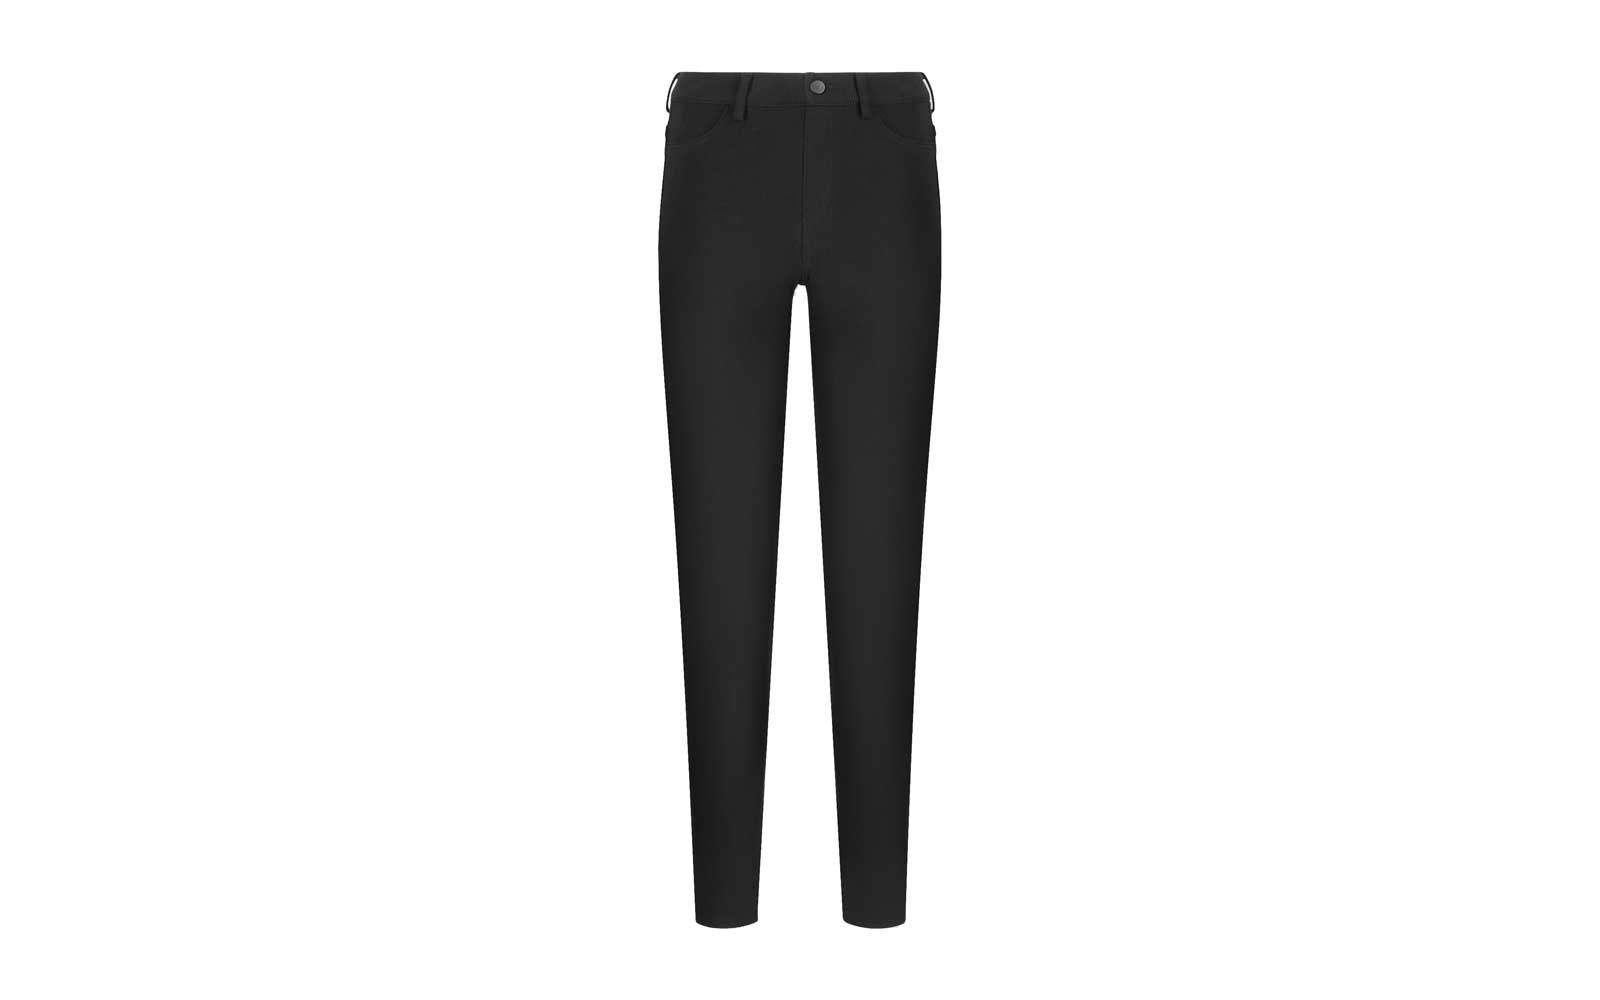 d91ae637e40c The Best Travel Pants for Women Who Hate Flying in Jeans | Travel + ...